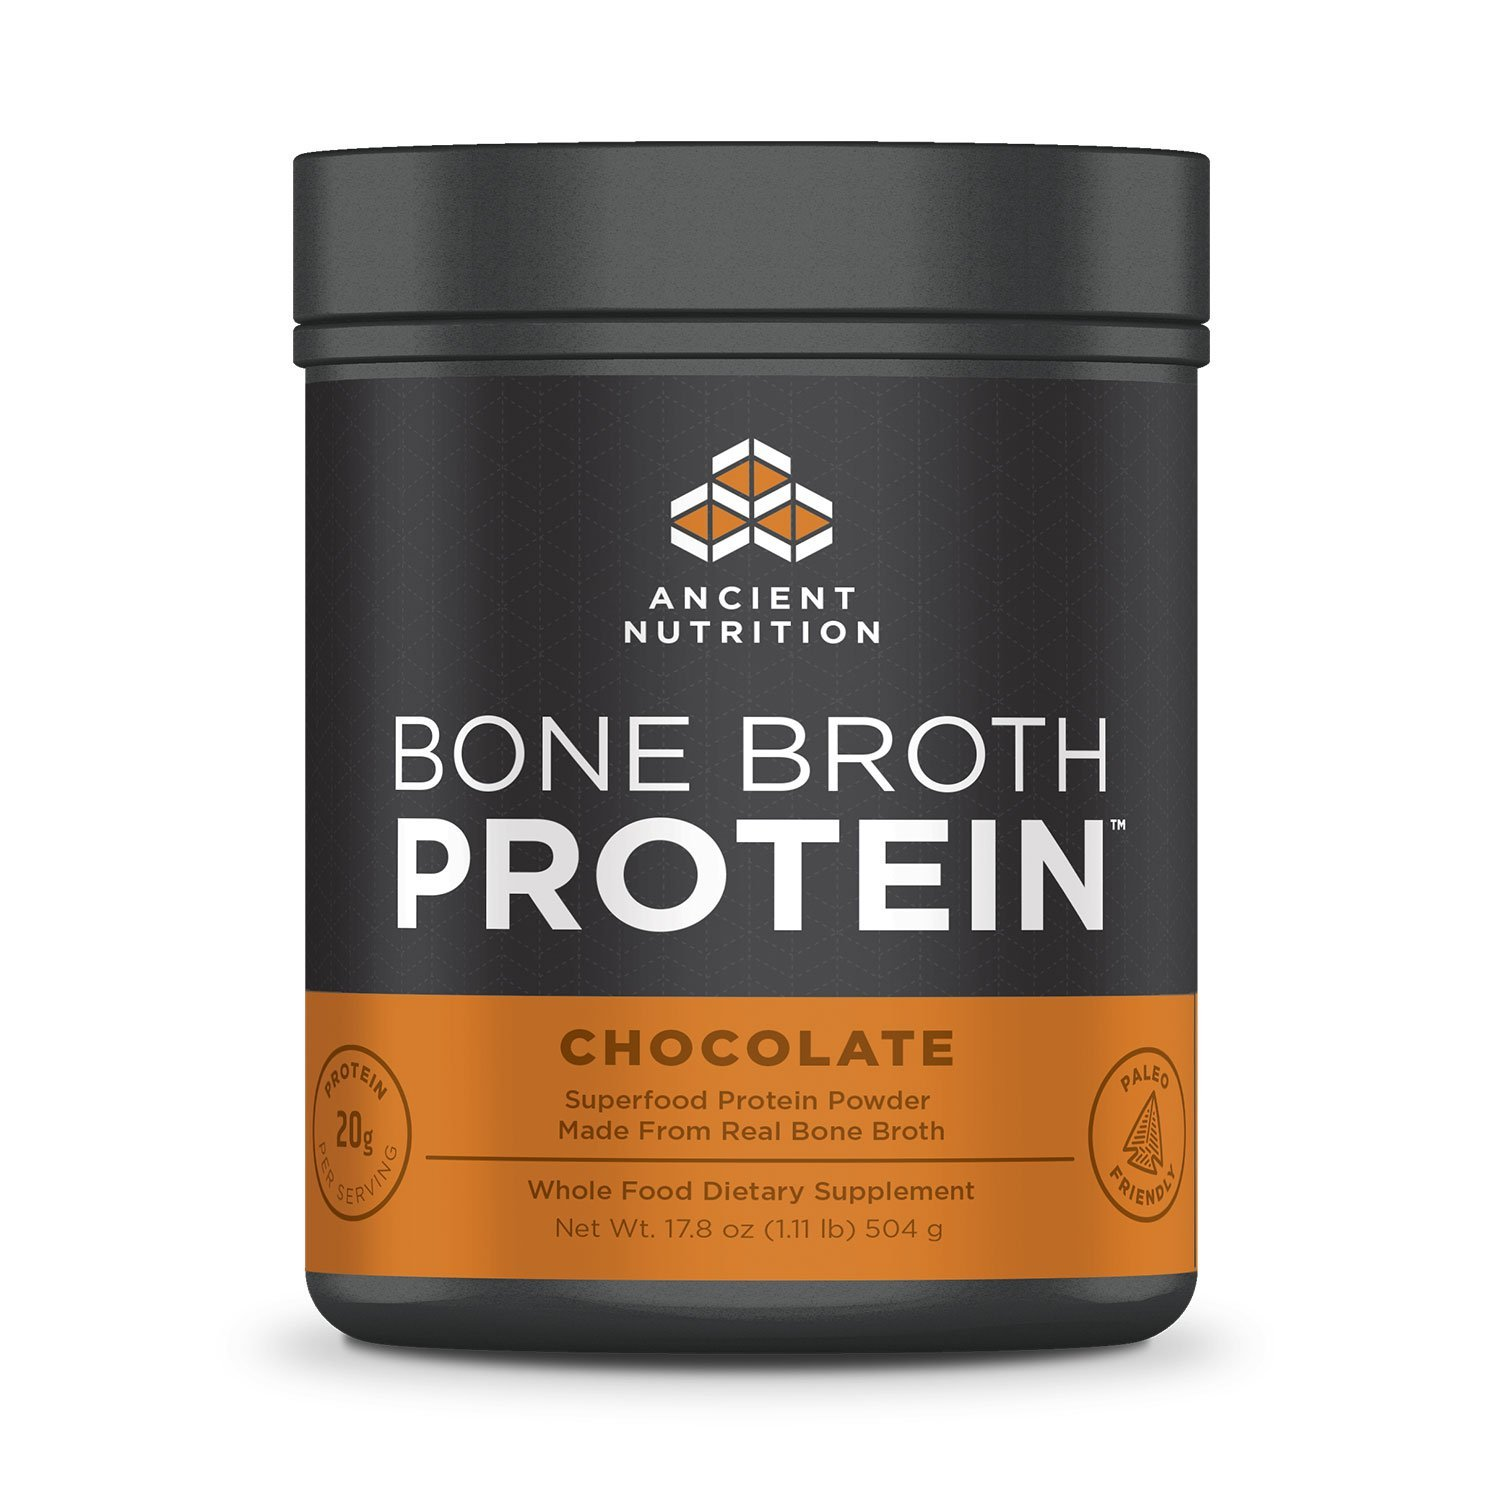 Ancient Nutrition Bone Broth Protein Powder, Chocolate Flavor, 20 Servings Size